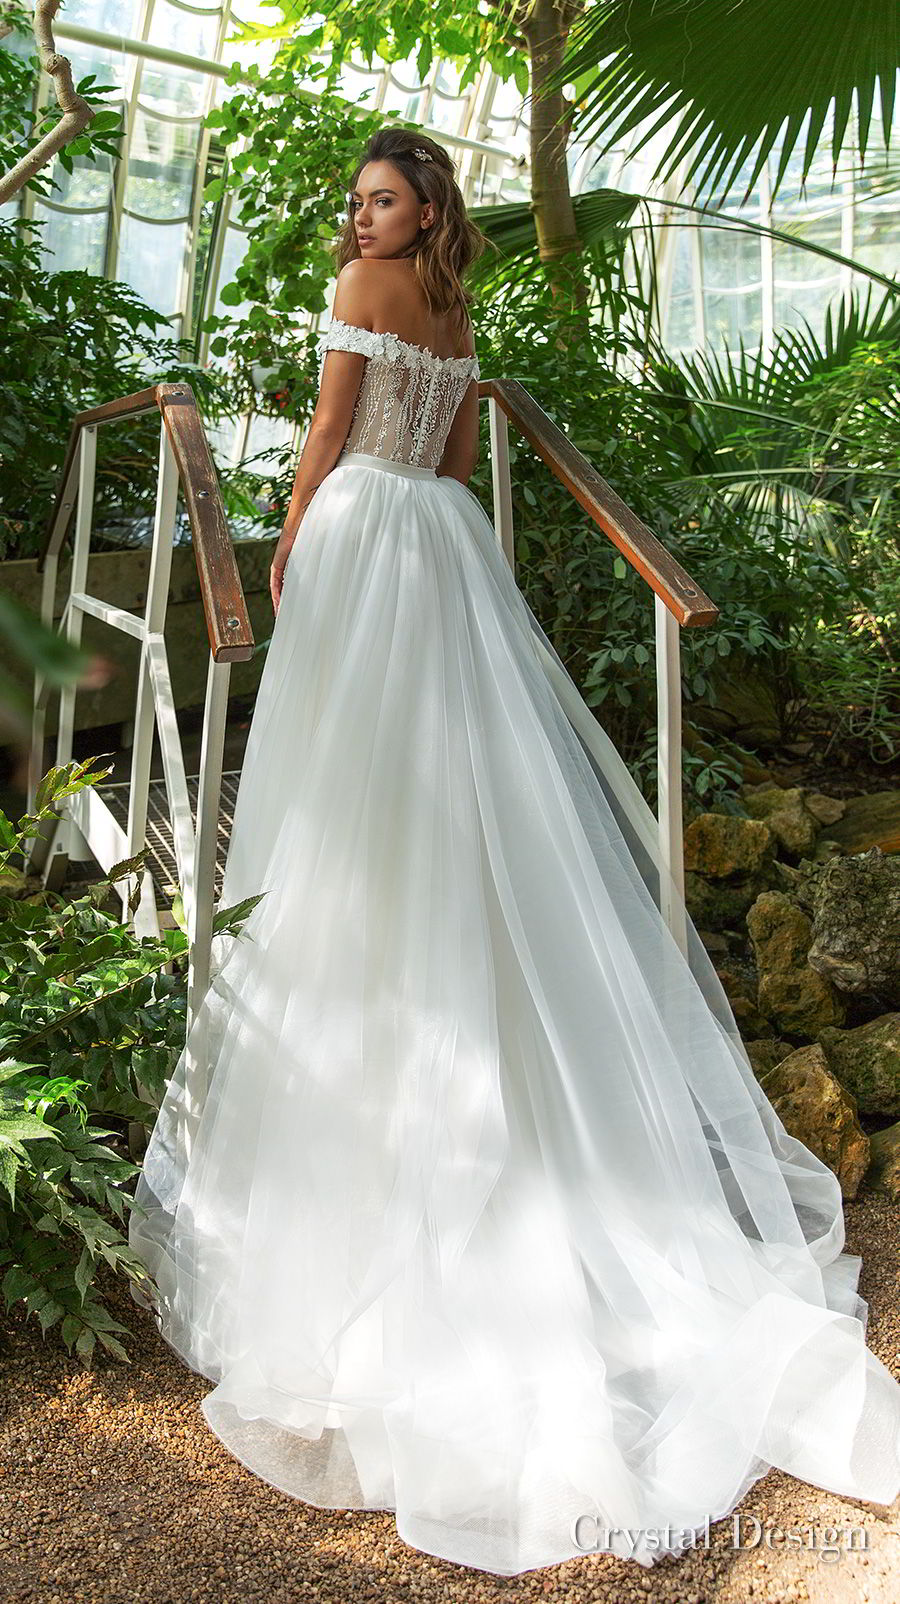 crystal design 2018 off the shoulder sweetheart neckline full embellishment elegant romantic fit and flare wedding dress a  line overskirt chapel train (claudia) bv